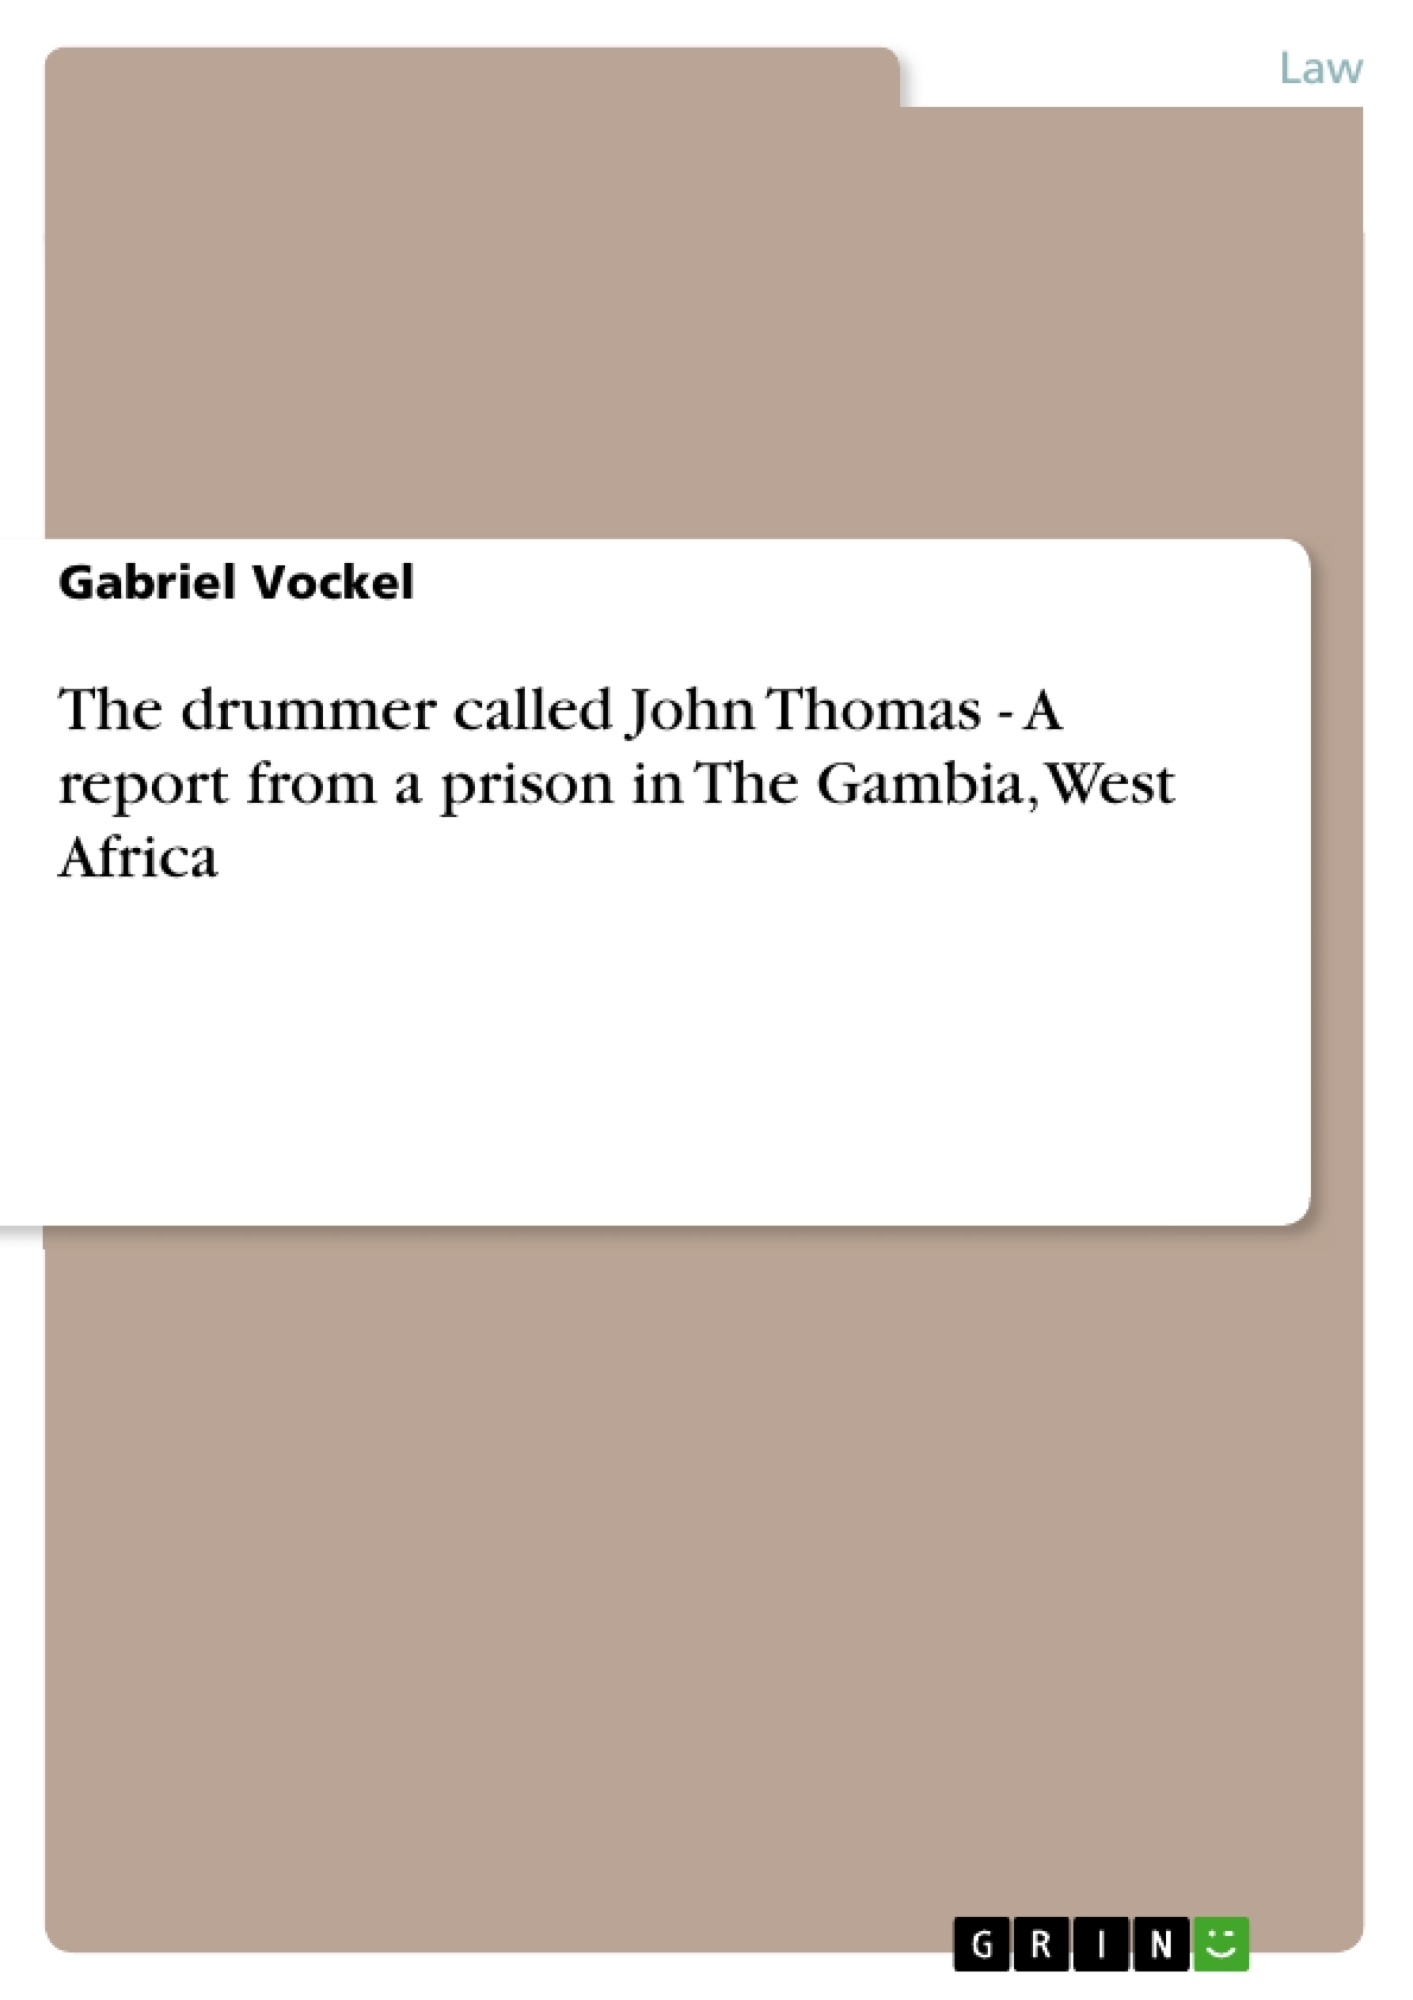 Title: The drummer called John Thomas - A report from a prison in The Gambia, West Africa